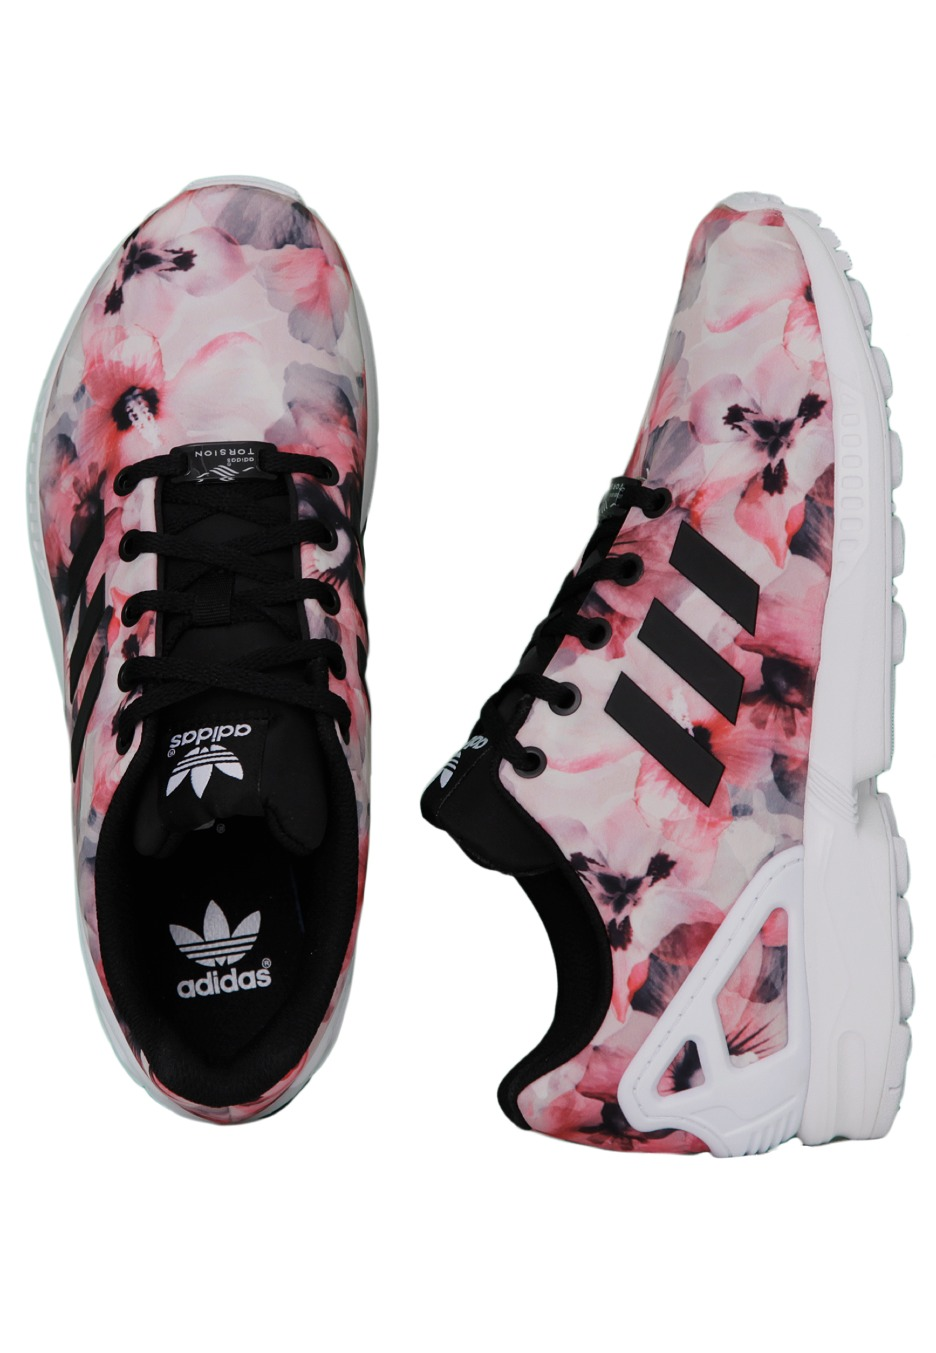 6defdb273 ... trainers 7109f ea504  free shipping adidas zx flux k core black core  black ftwr white girl shoes 4aad9 13721